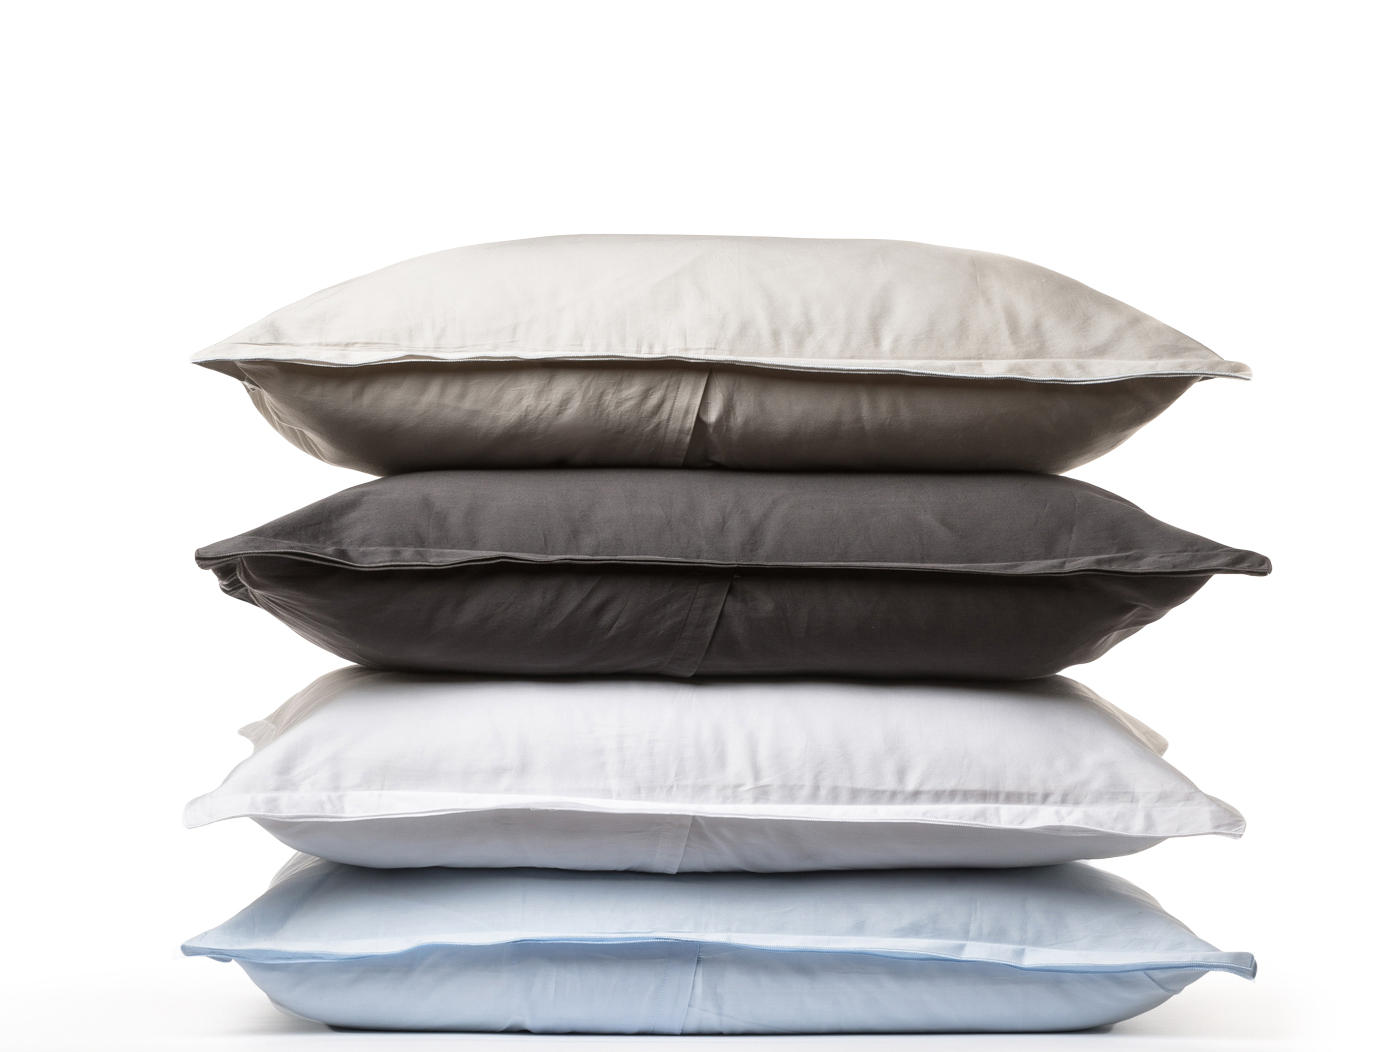 PARACHUTE BEDDING INCLUDES PILLOW CASES HAVE AN ENVELOPE CLOSURE ON THE BACK FOR A STYLED LOOK. AVAILABLE COLORS ARE SAND, SLATE, WHITE, POWDER AND NAVY